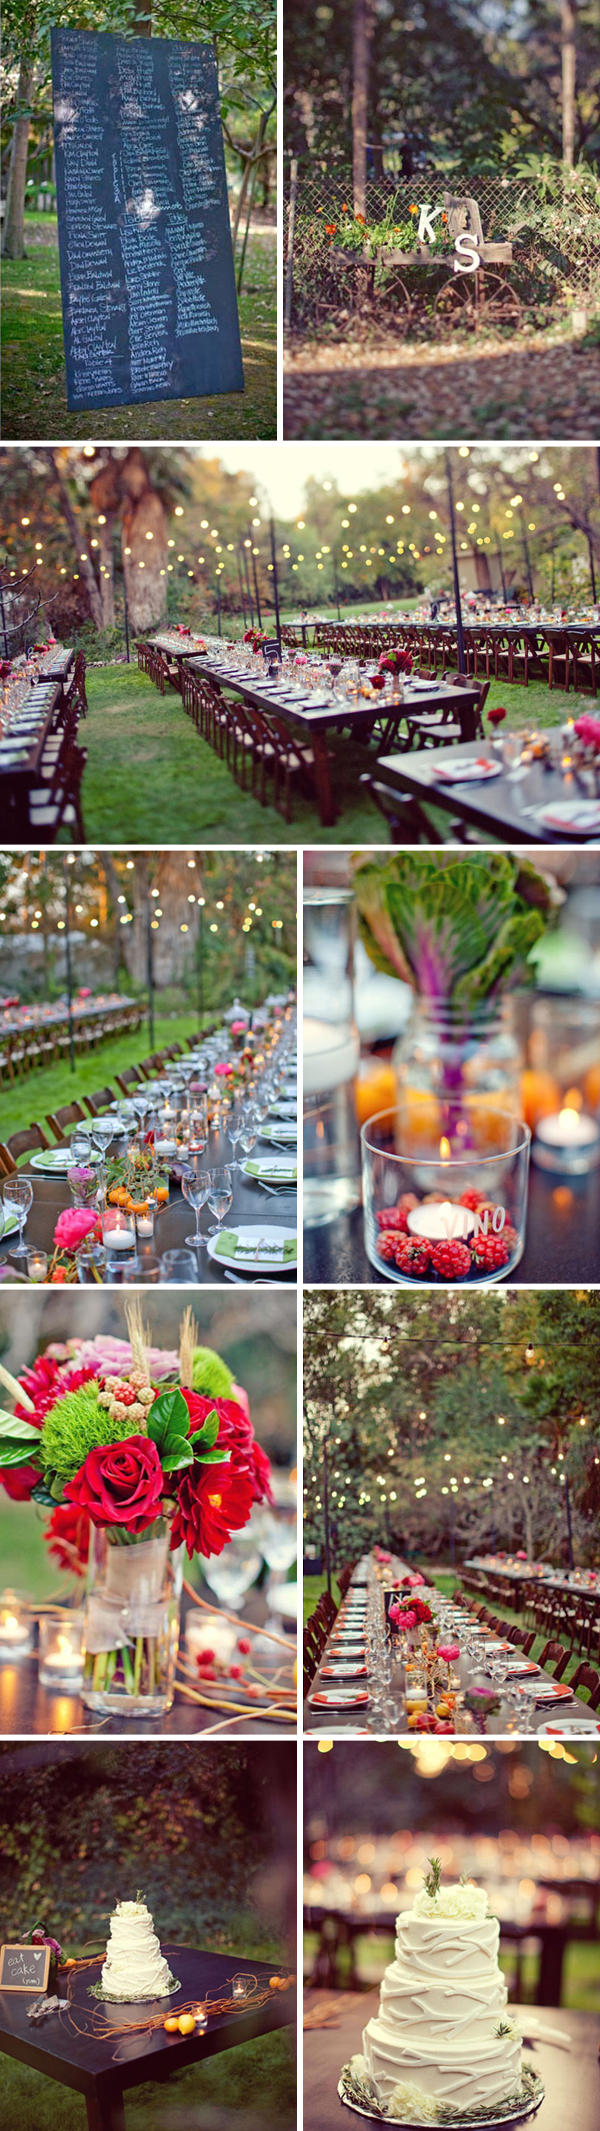 Diy Wedding Reception Decorations